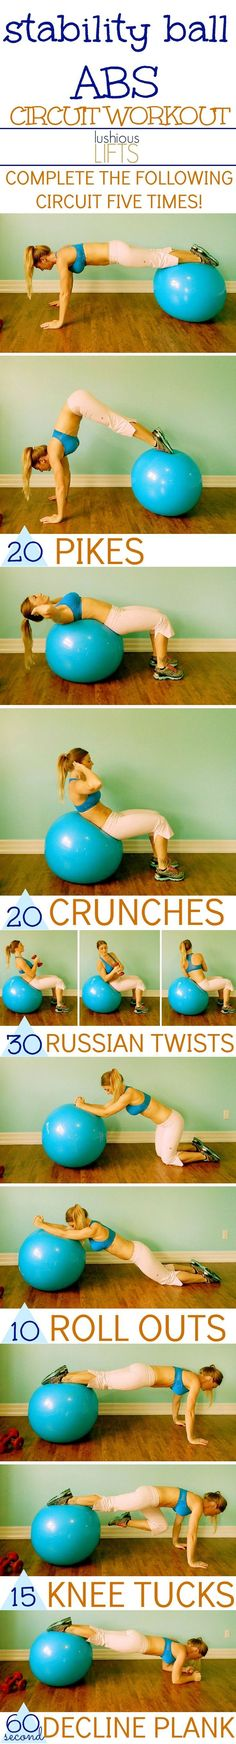 stability ball abs circuit